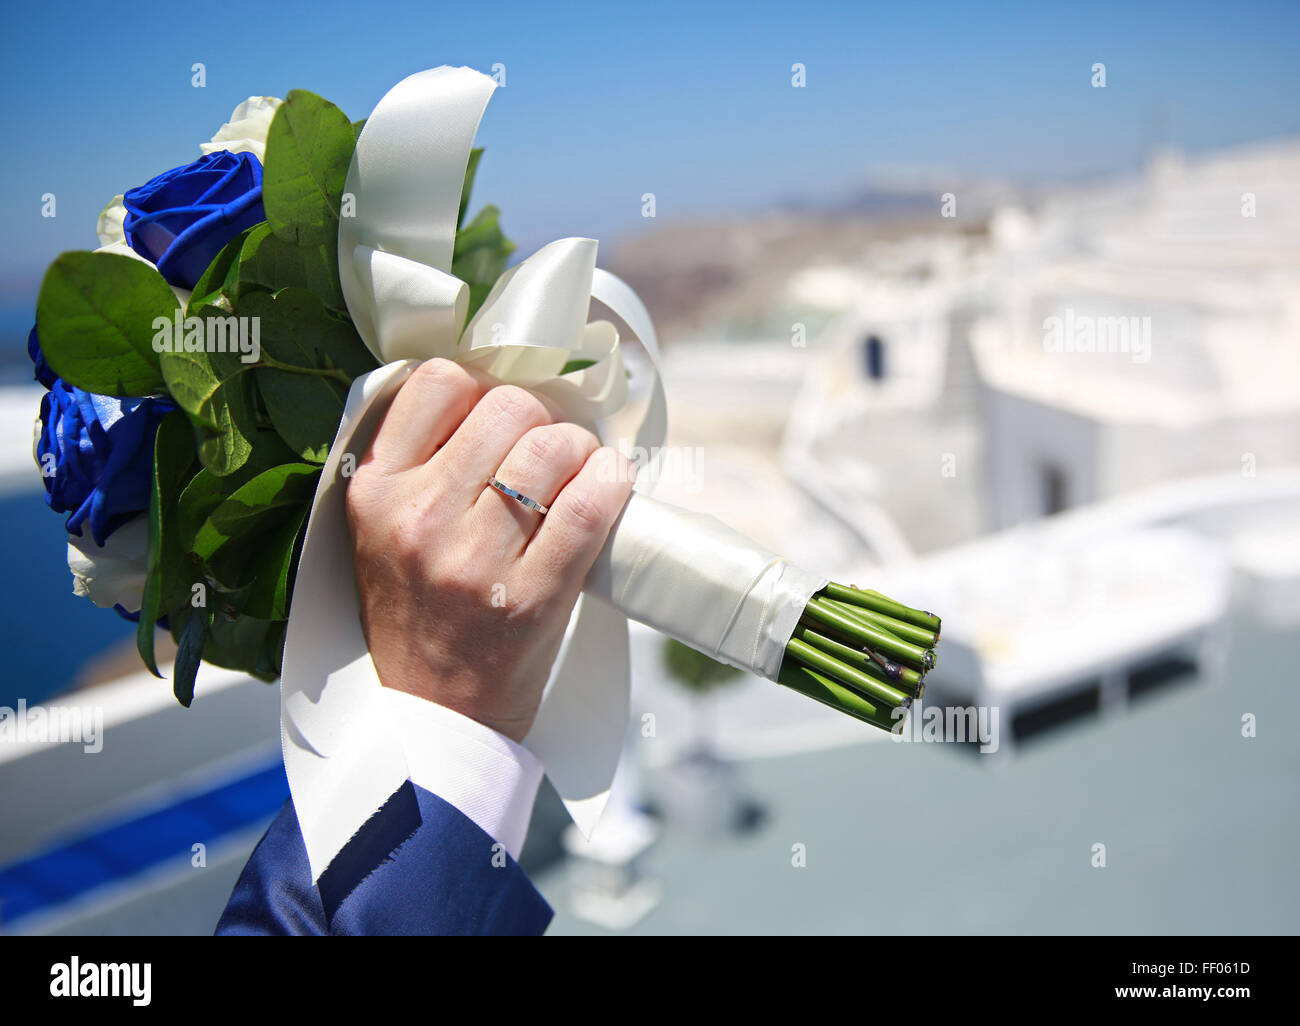 Man's hand holding wedding bouquet on a background of white buildings - Stock Image